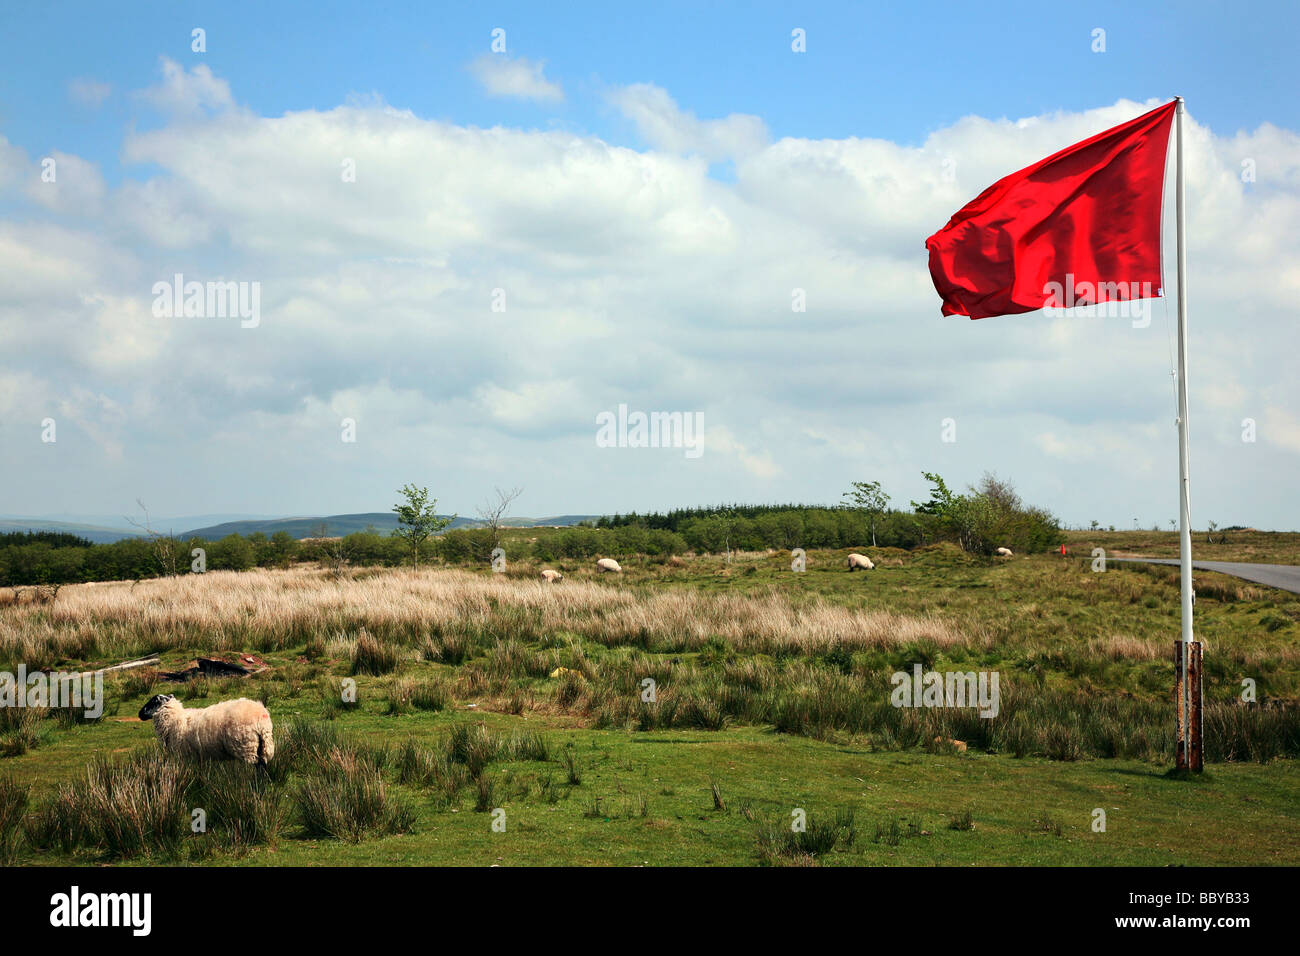 Red flag warning that the army firing ranges are in use on Garth Hill, a popular Mid-Wales viewpoint near Builth - Stock Image